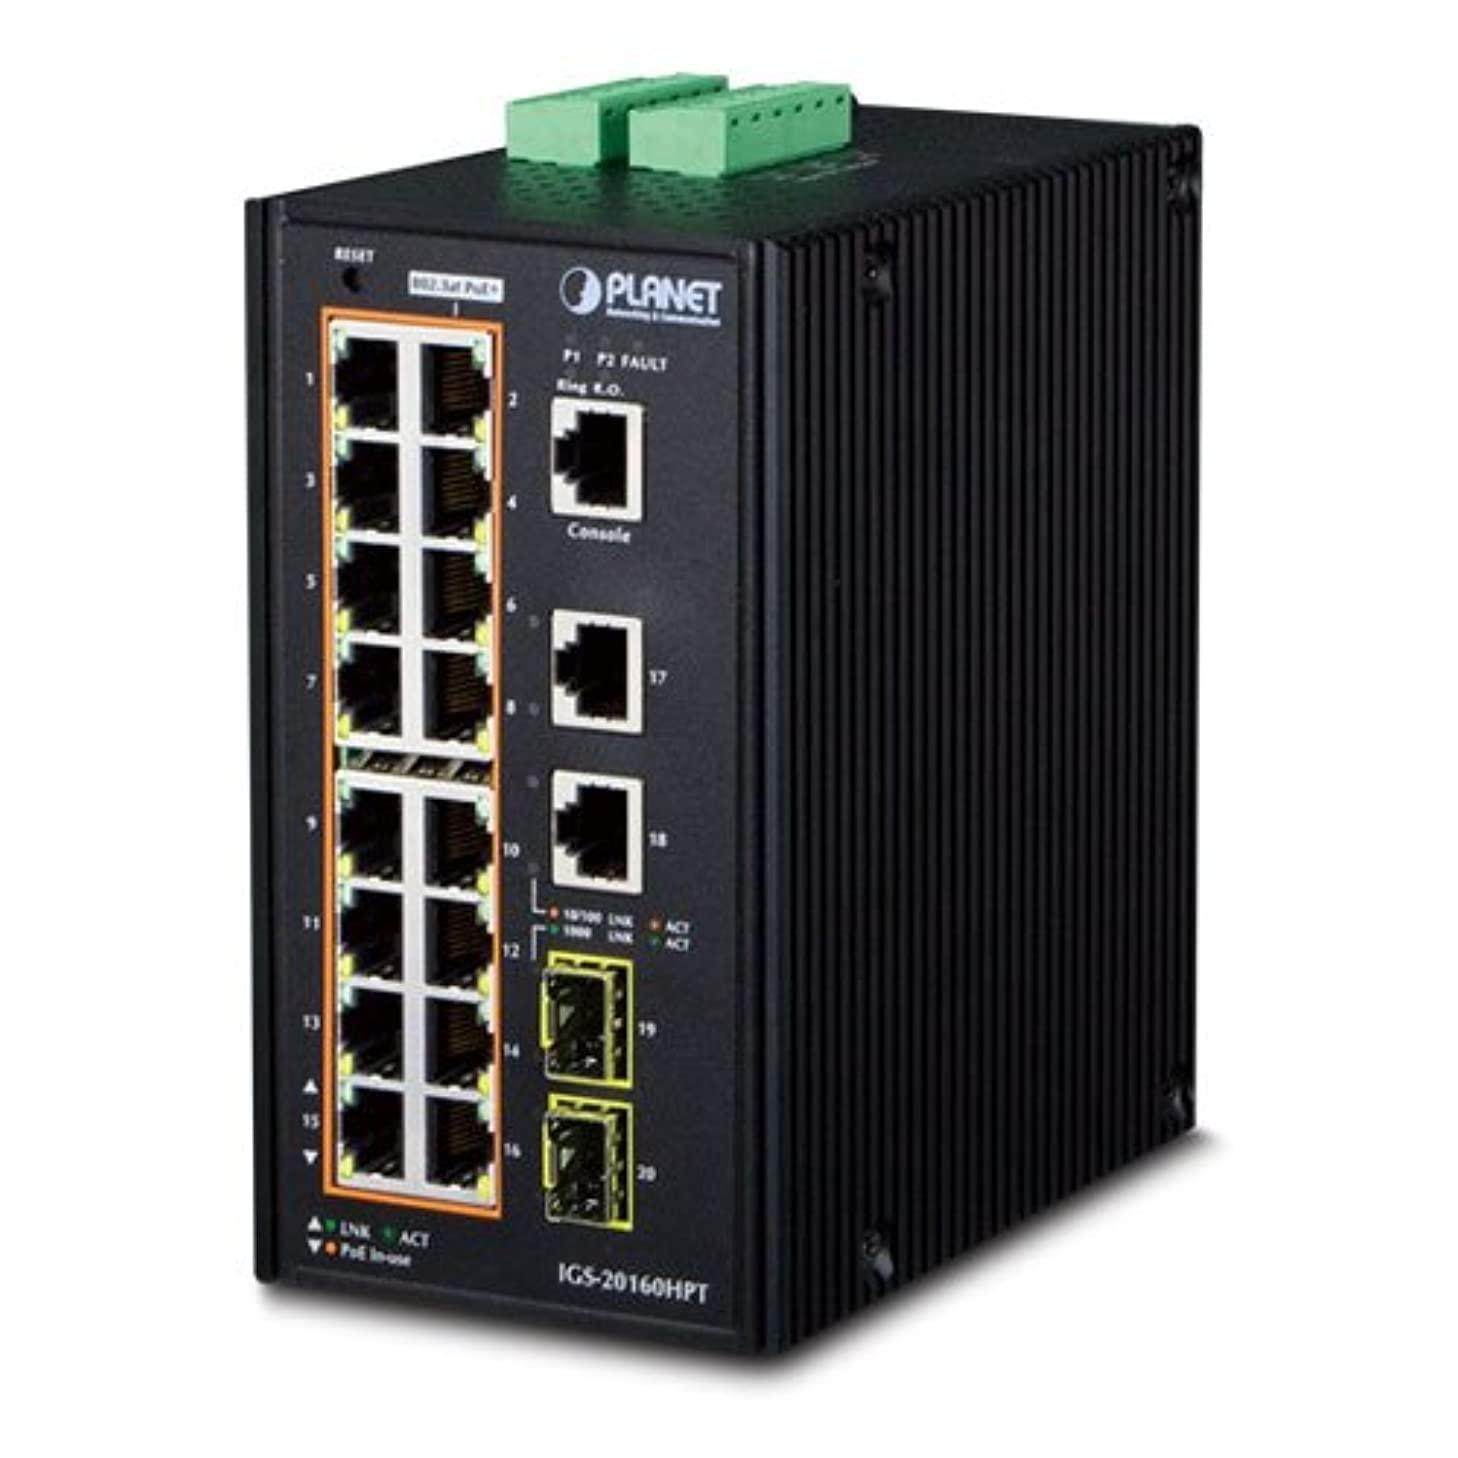 IGS-20160HPT Industrial 16-Port 10/100/1000T 802.3at PoE + 2-Port 10/100/100T + 2-Port 100/1000X SFP Managed Switch (-40~75 Degrees C)